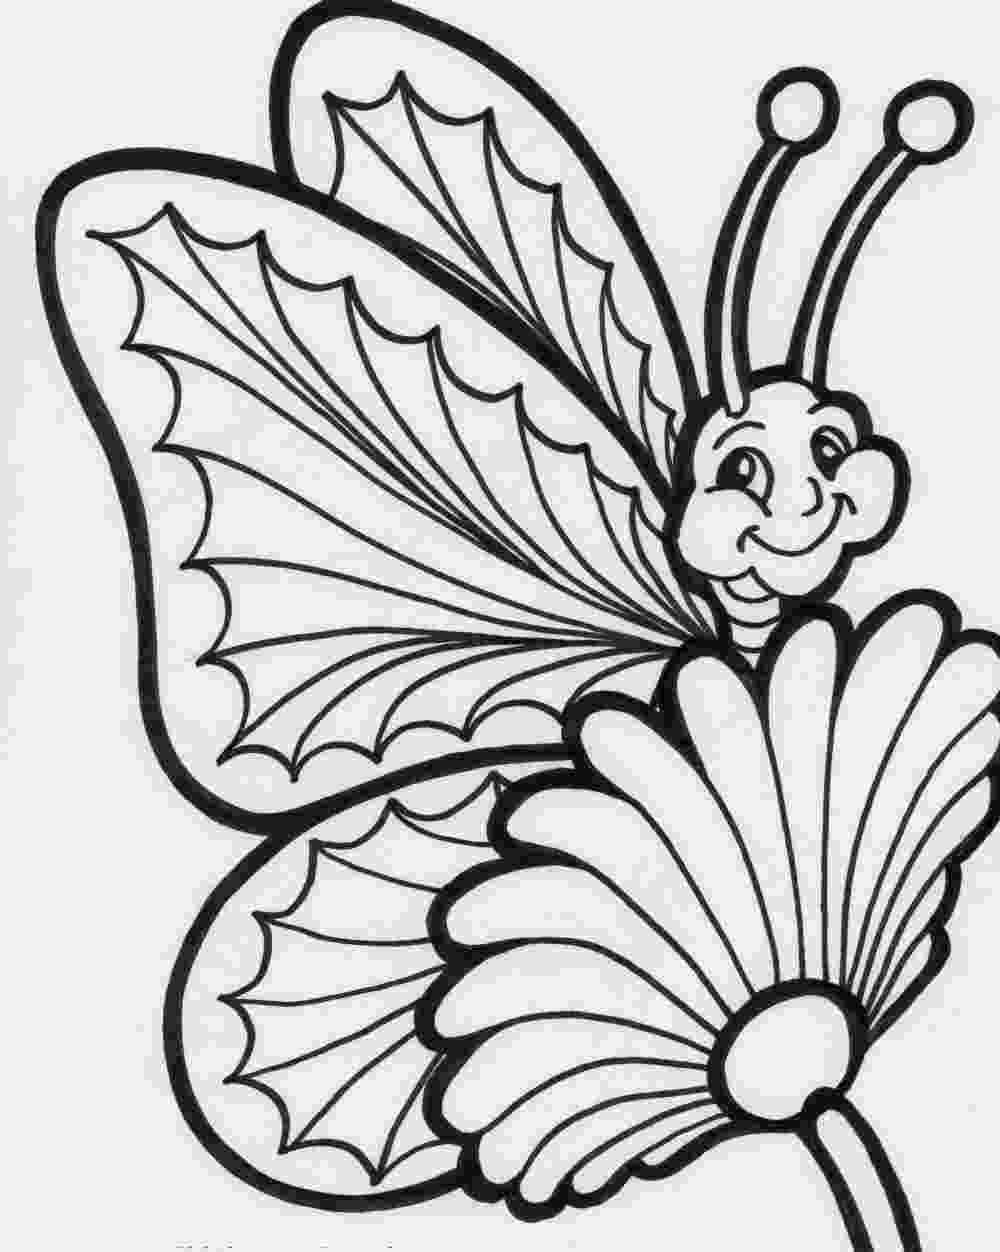 coloring pages of butterflies and flowers butterfly and flowers coloring page free printable of coloring butterflies and flowers pages